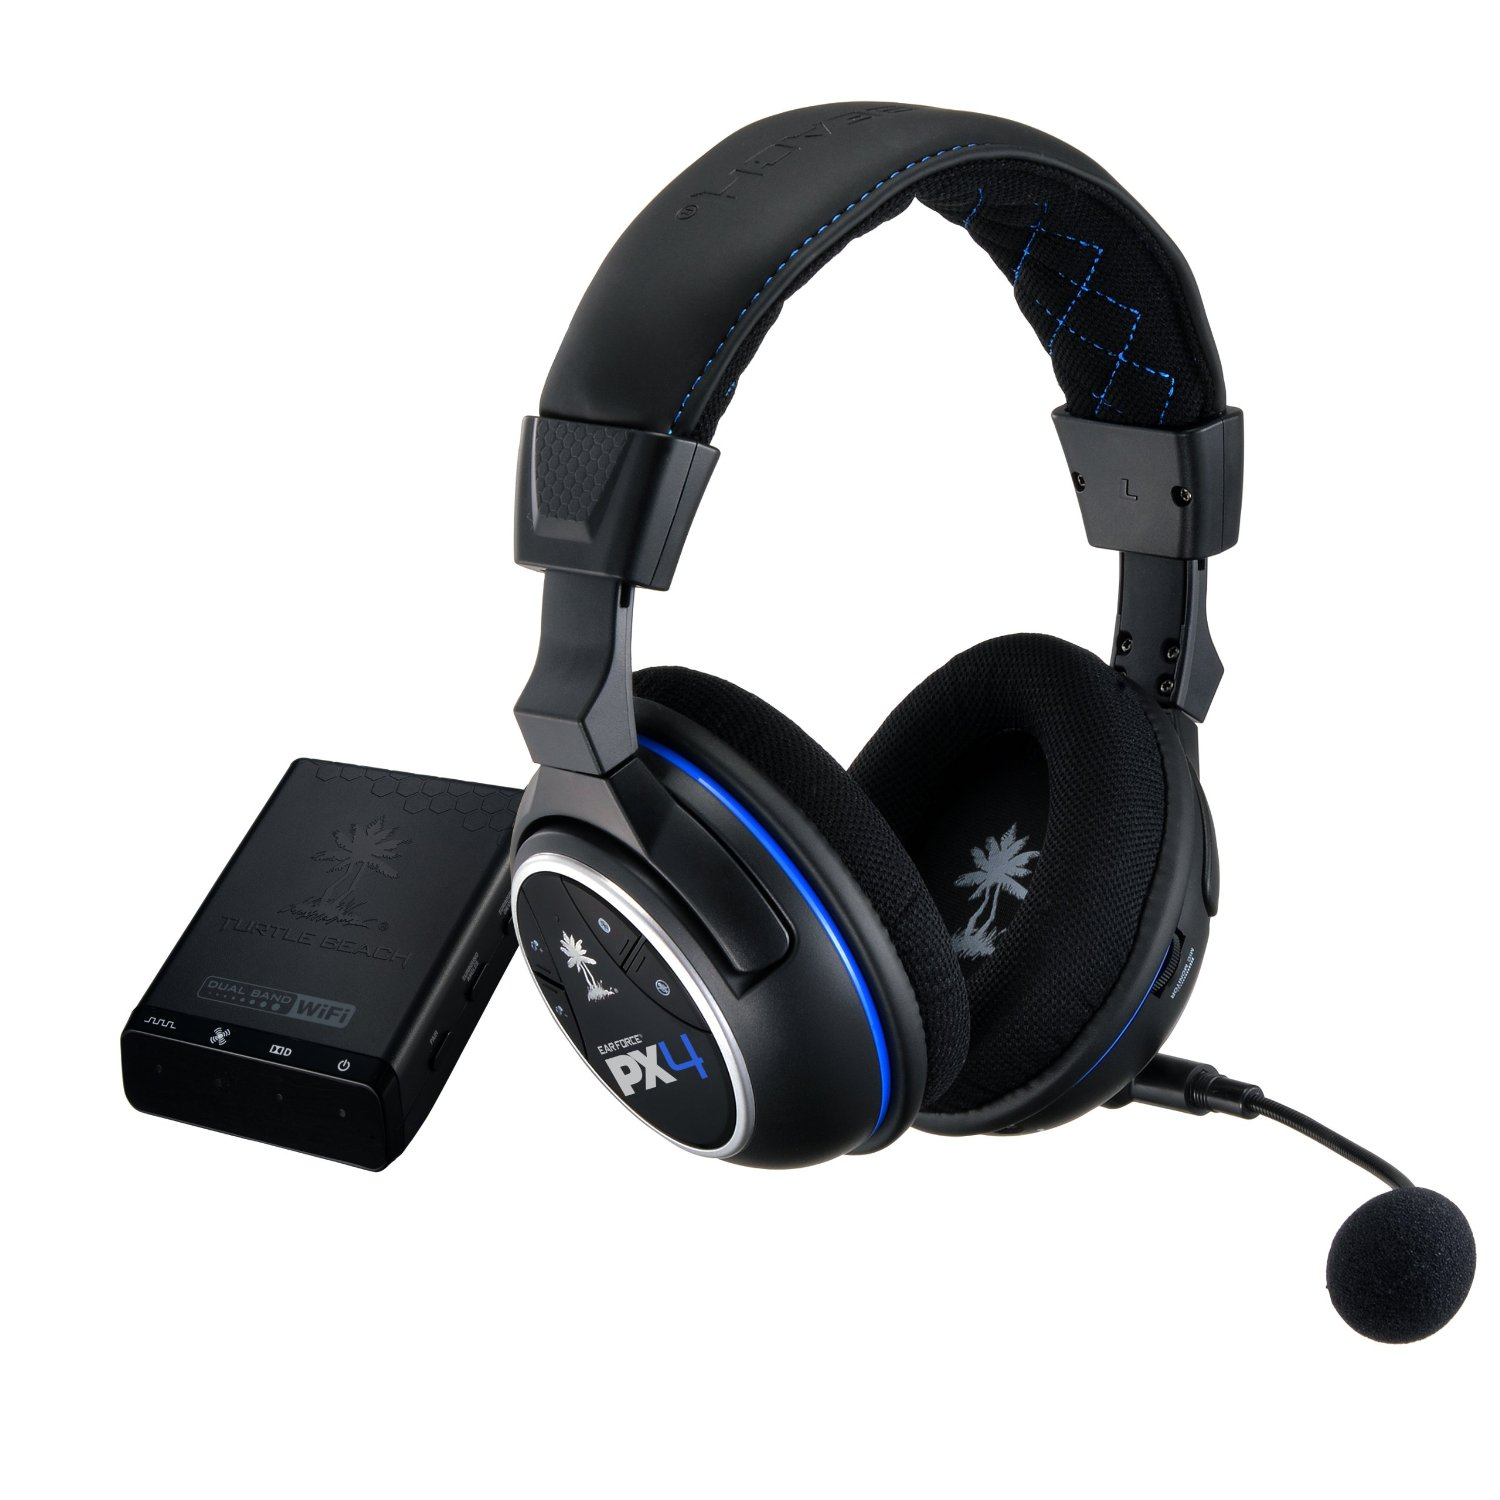 The Average Option Turtle Beach Ear Force PX4 Premium Wireless Gaming Headset